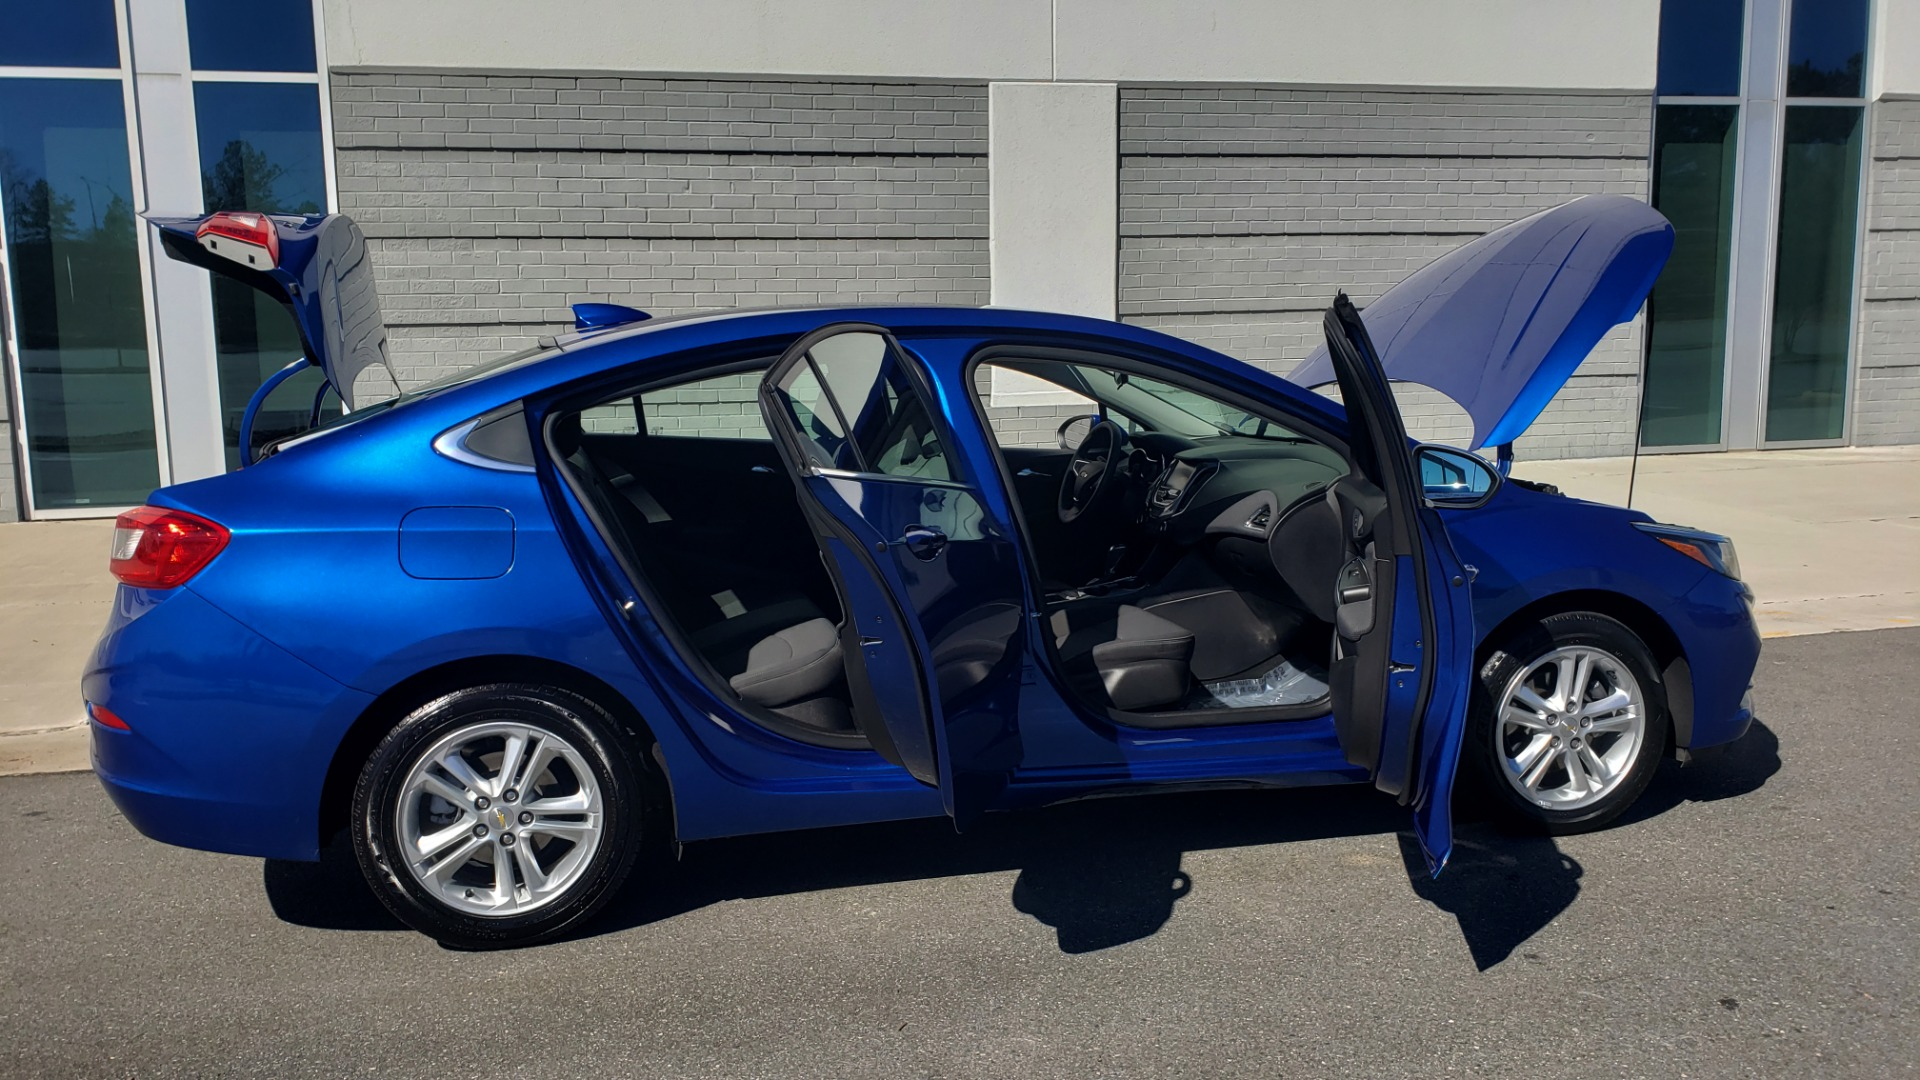 Used 2017 Chevrolet CRUZE LT 1.4L 1SD / 6-SPD AUTO / HTS STS / REMOTE START / REARVIEW for sale $11,495 at Formula Imports in Charlotte NC 28227 8